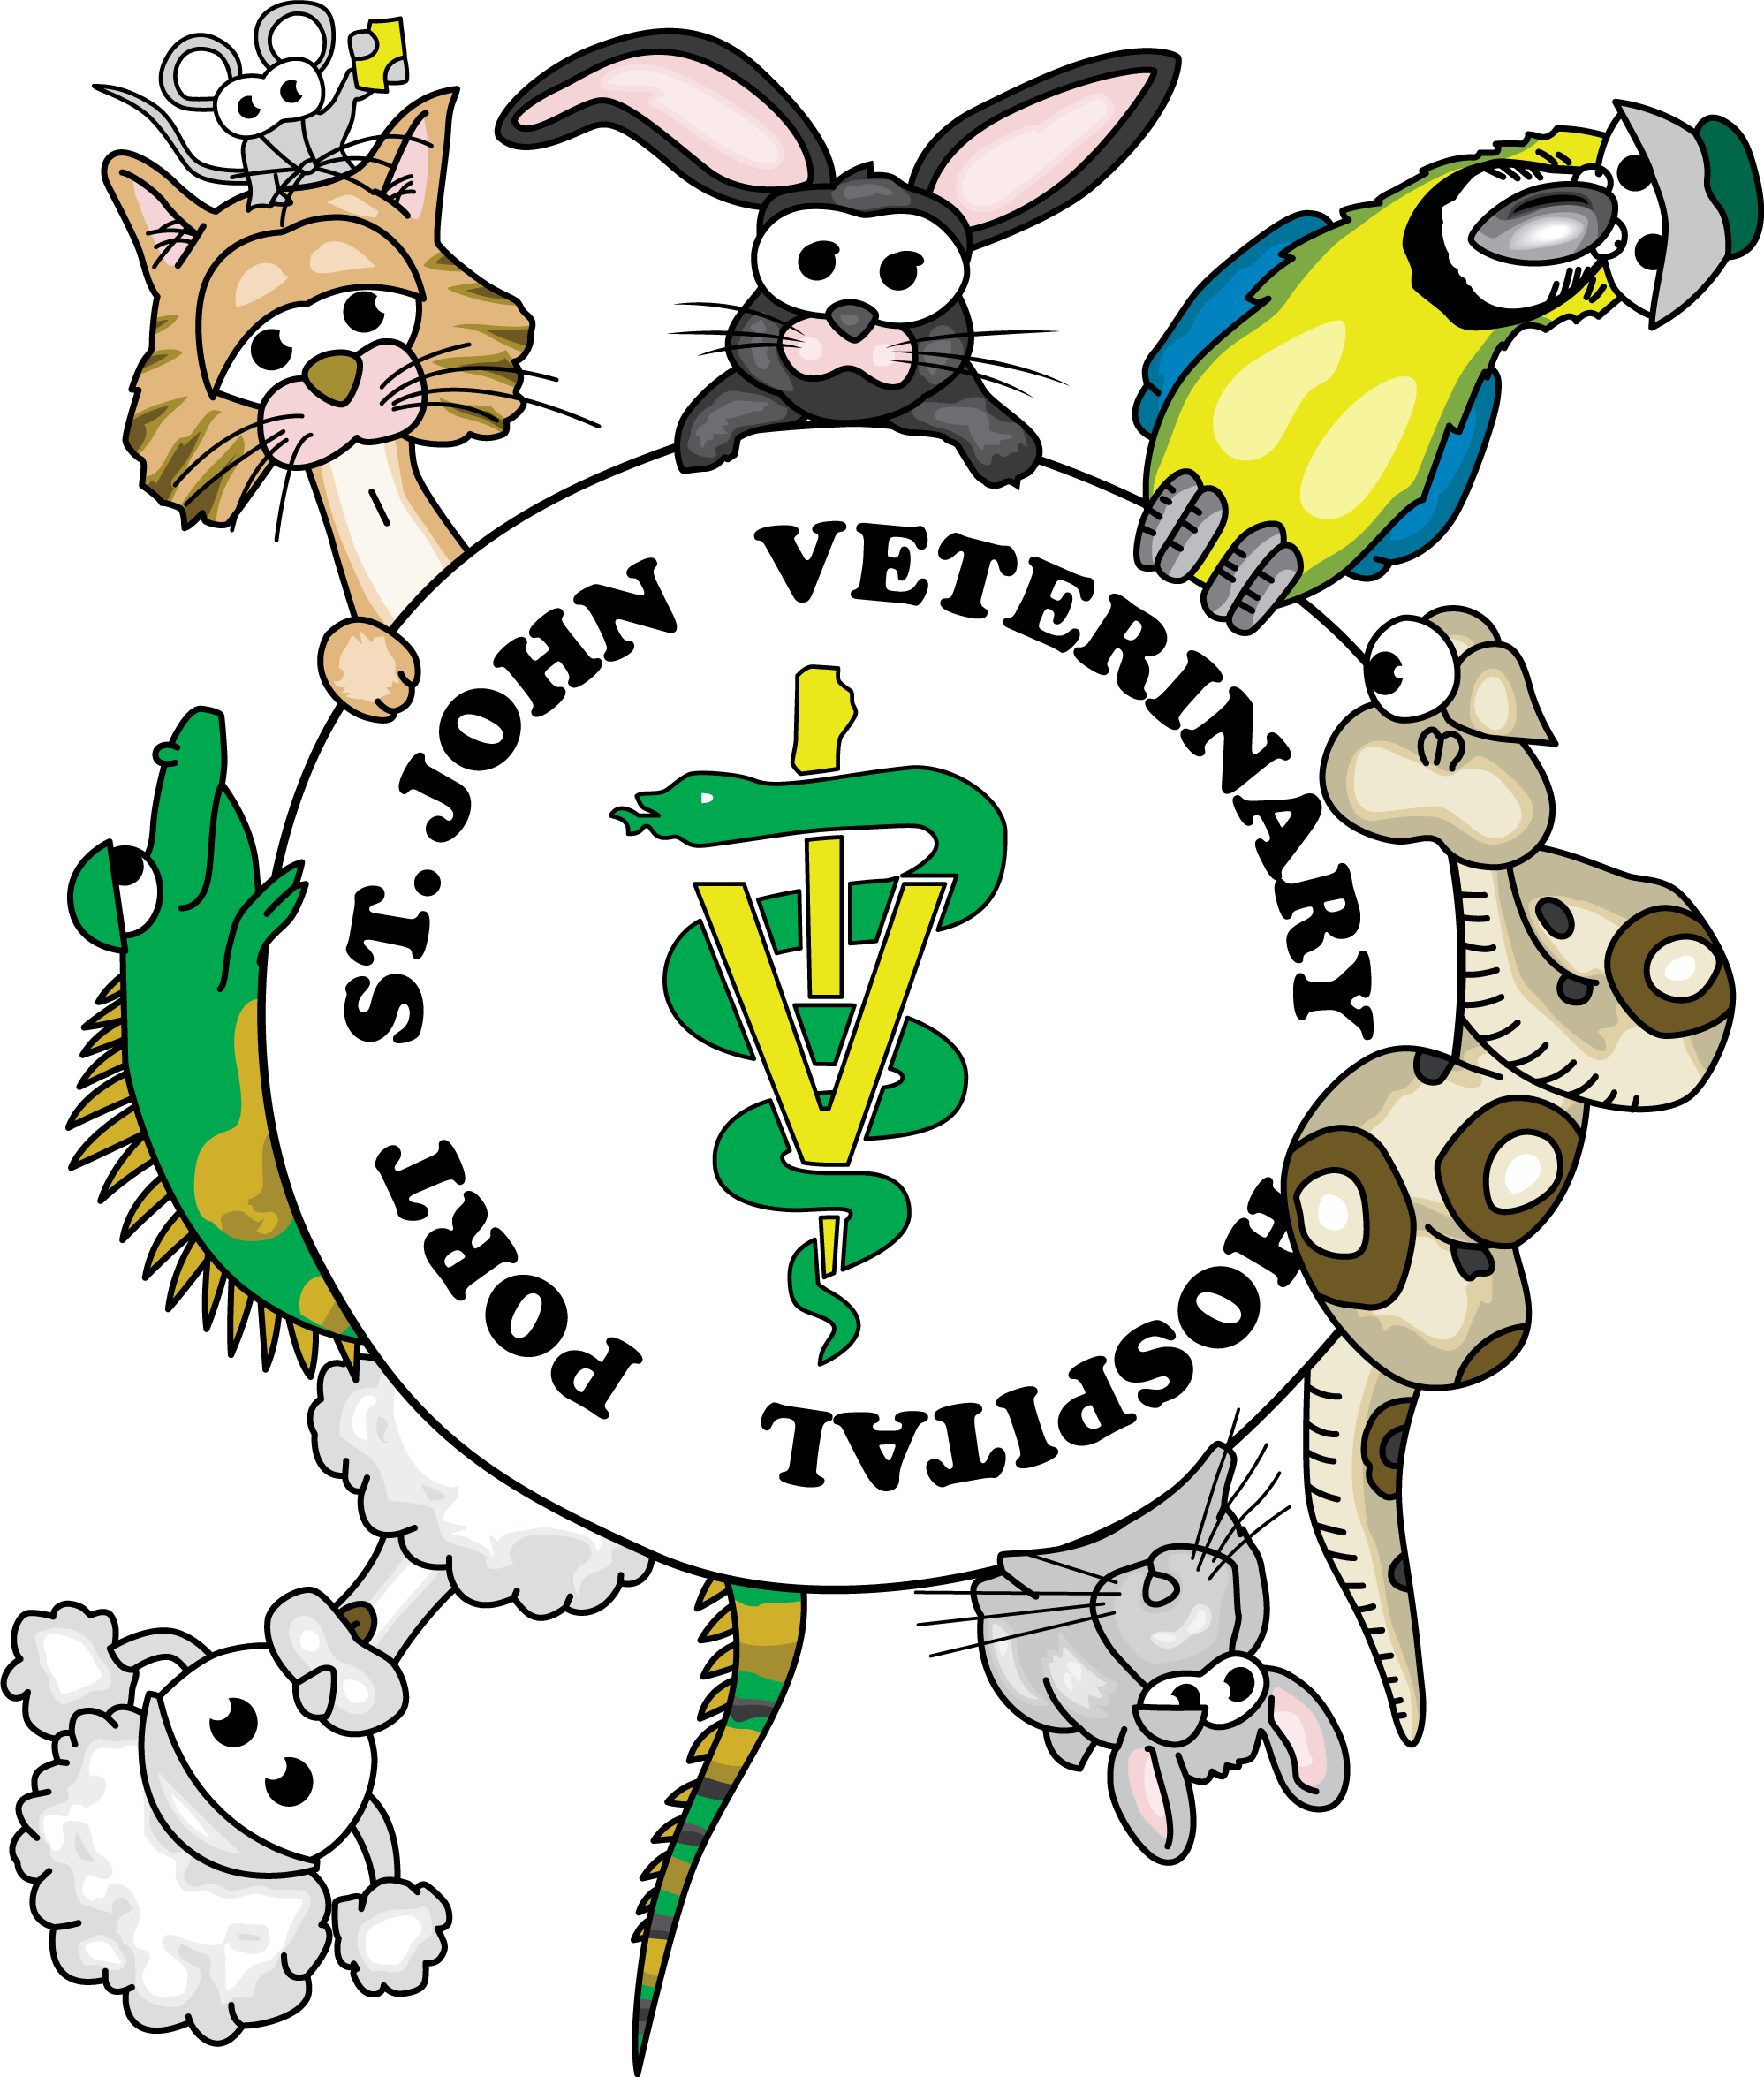 Port St.John Veterinary Hospital